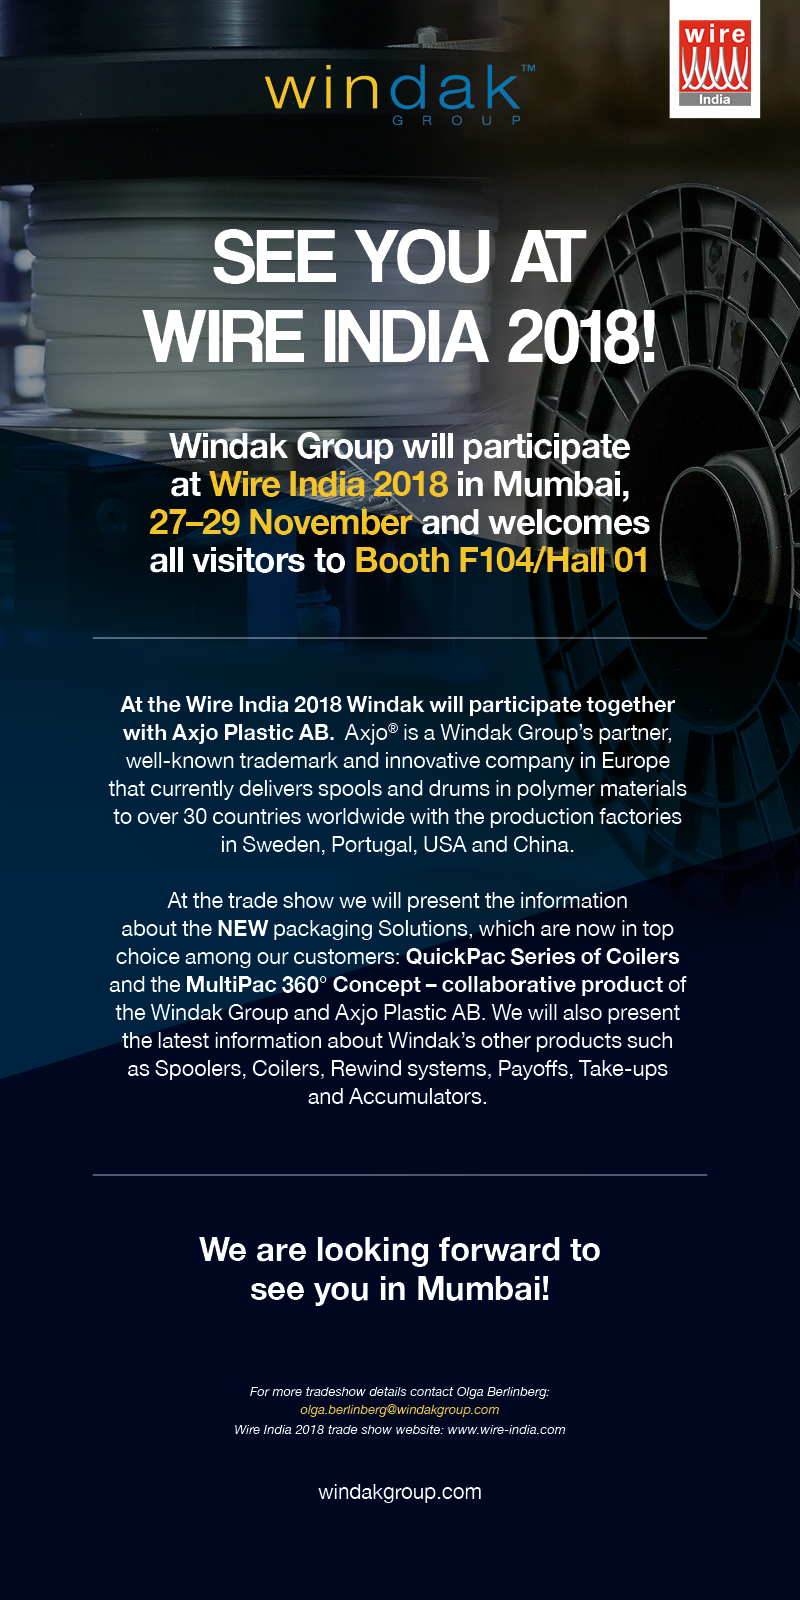 Windak_invitation_Wire India 2018